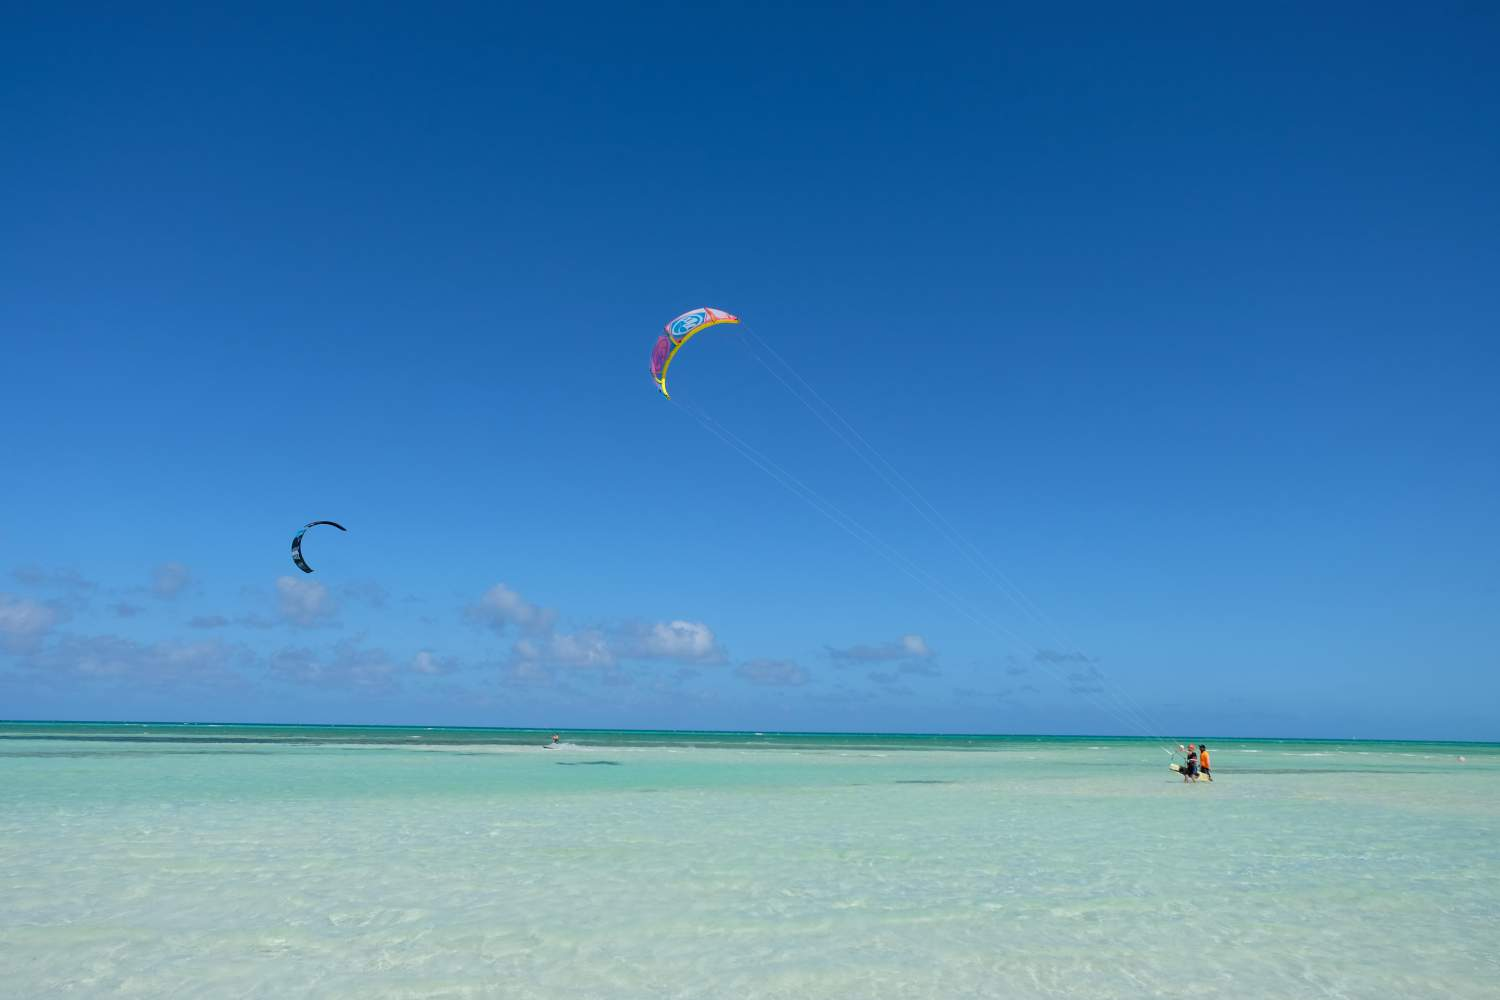 Kite surf on Cayo Guillermo's beaches